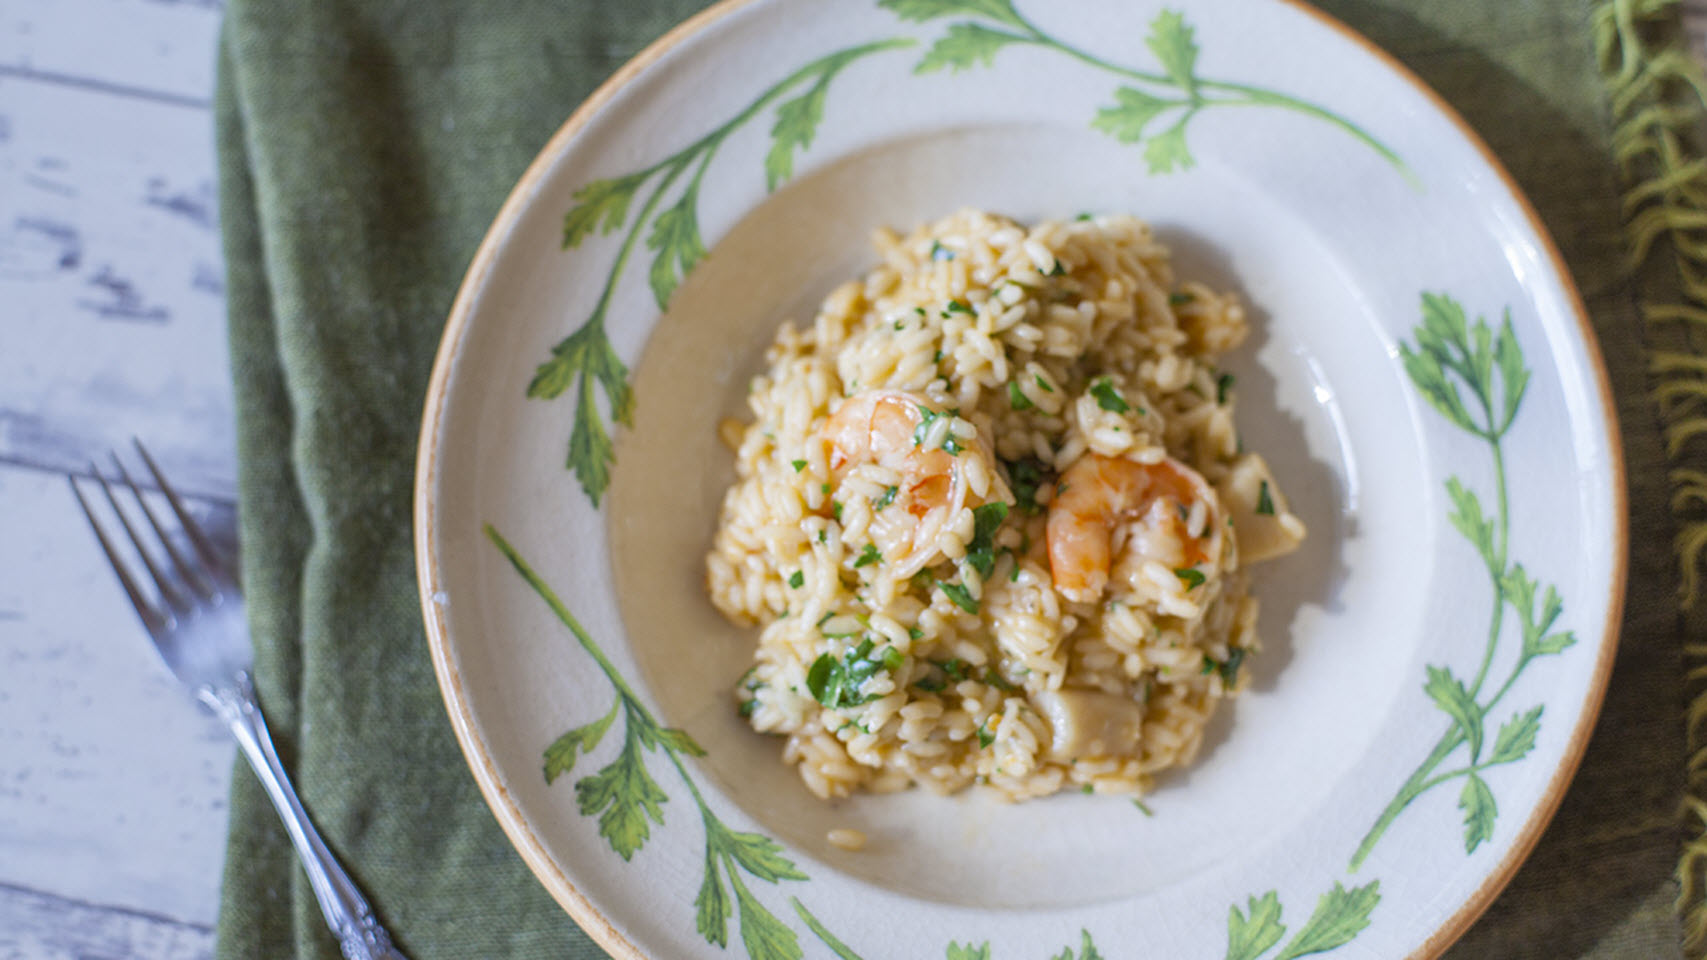 Italian Shrimp and Scallop Risotto